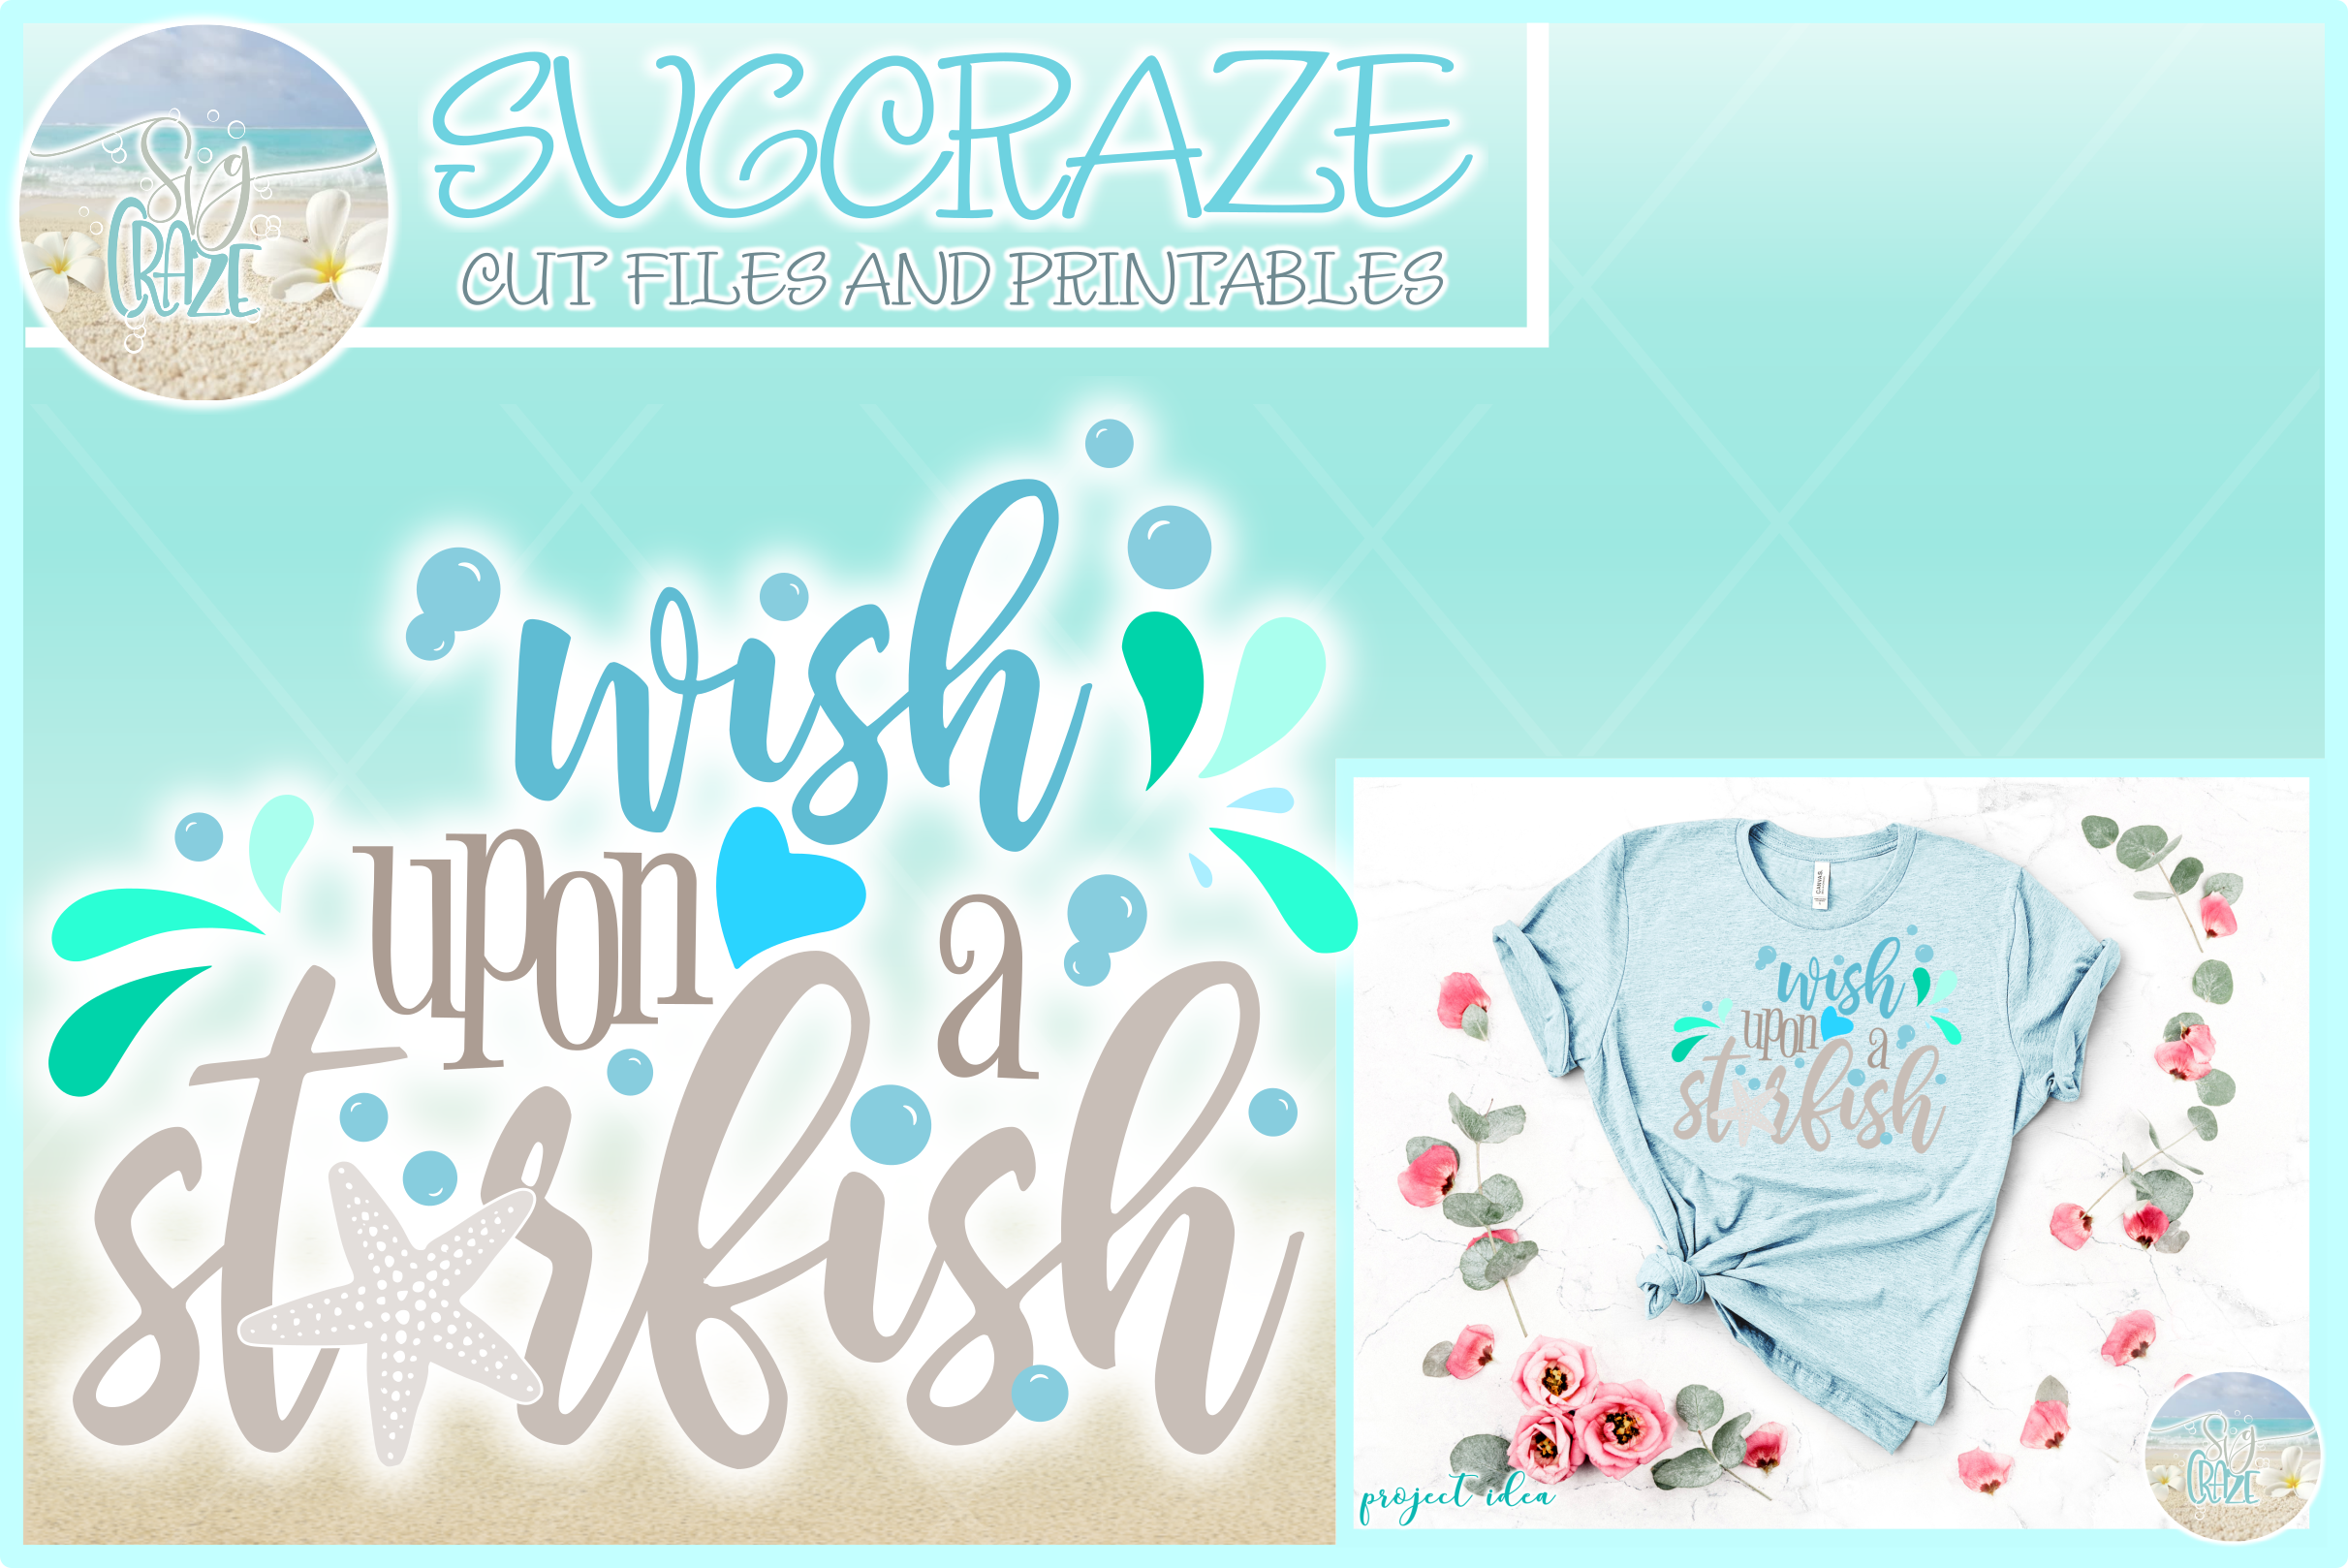 Wish Upon A Star Fish Quote Svg Dxf Eps Png Pdf Files example image 1